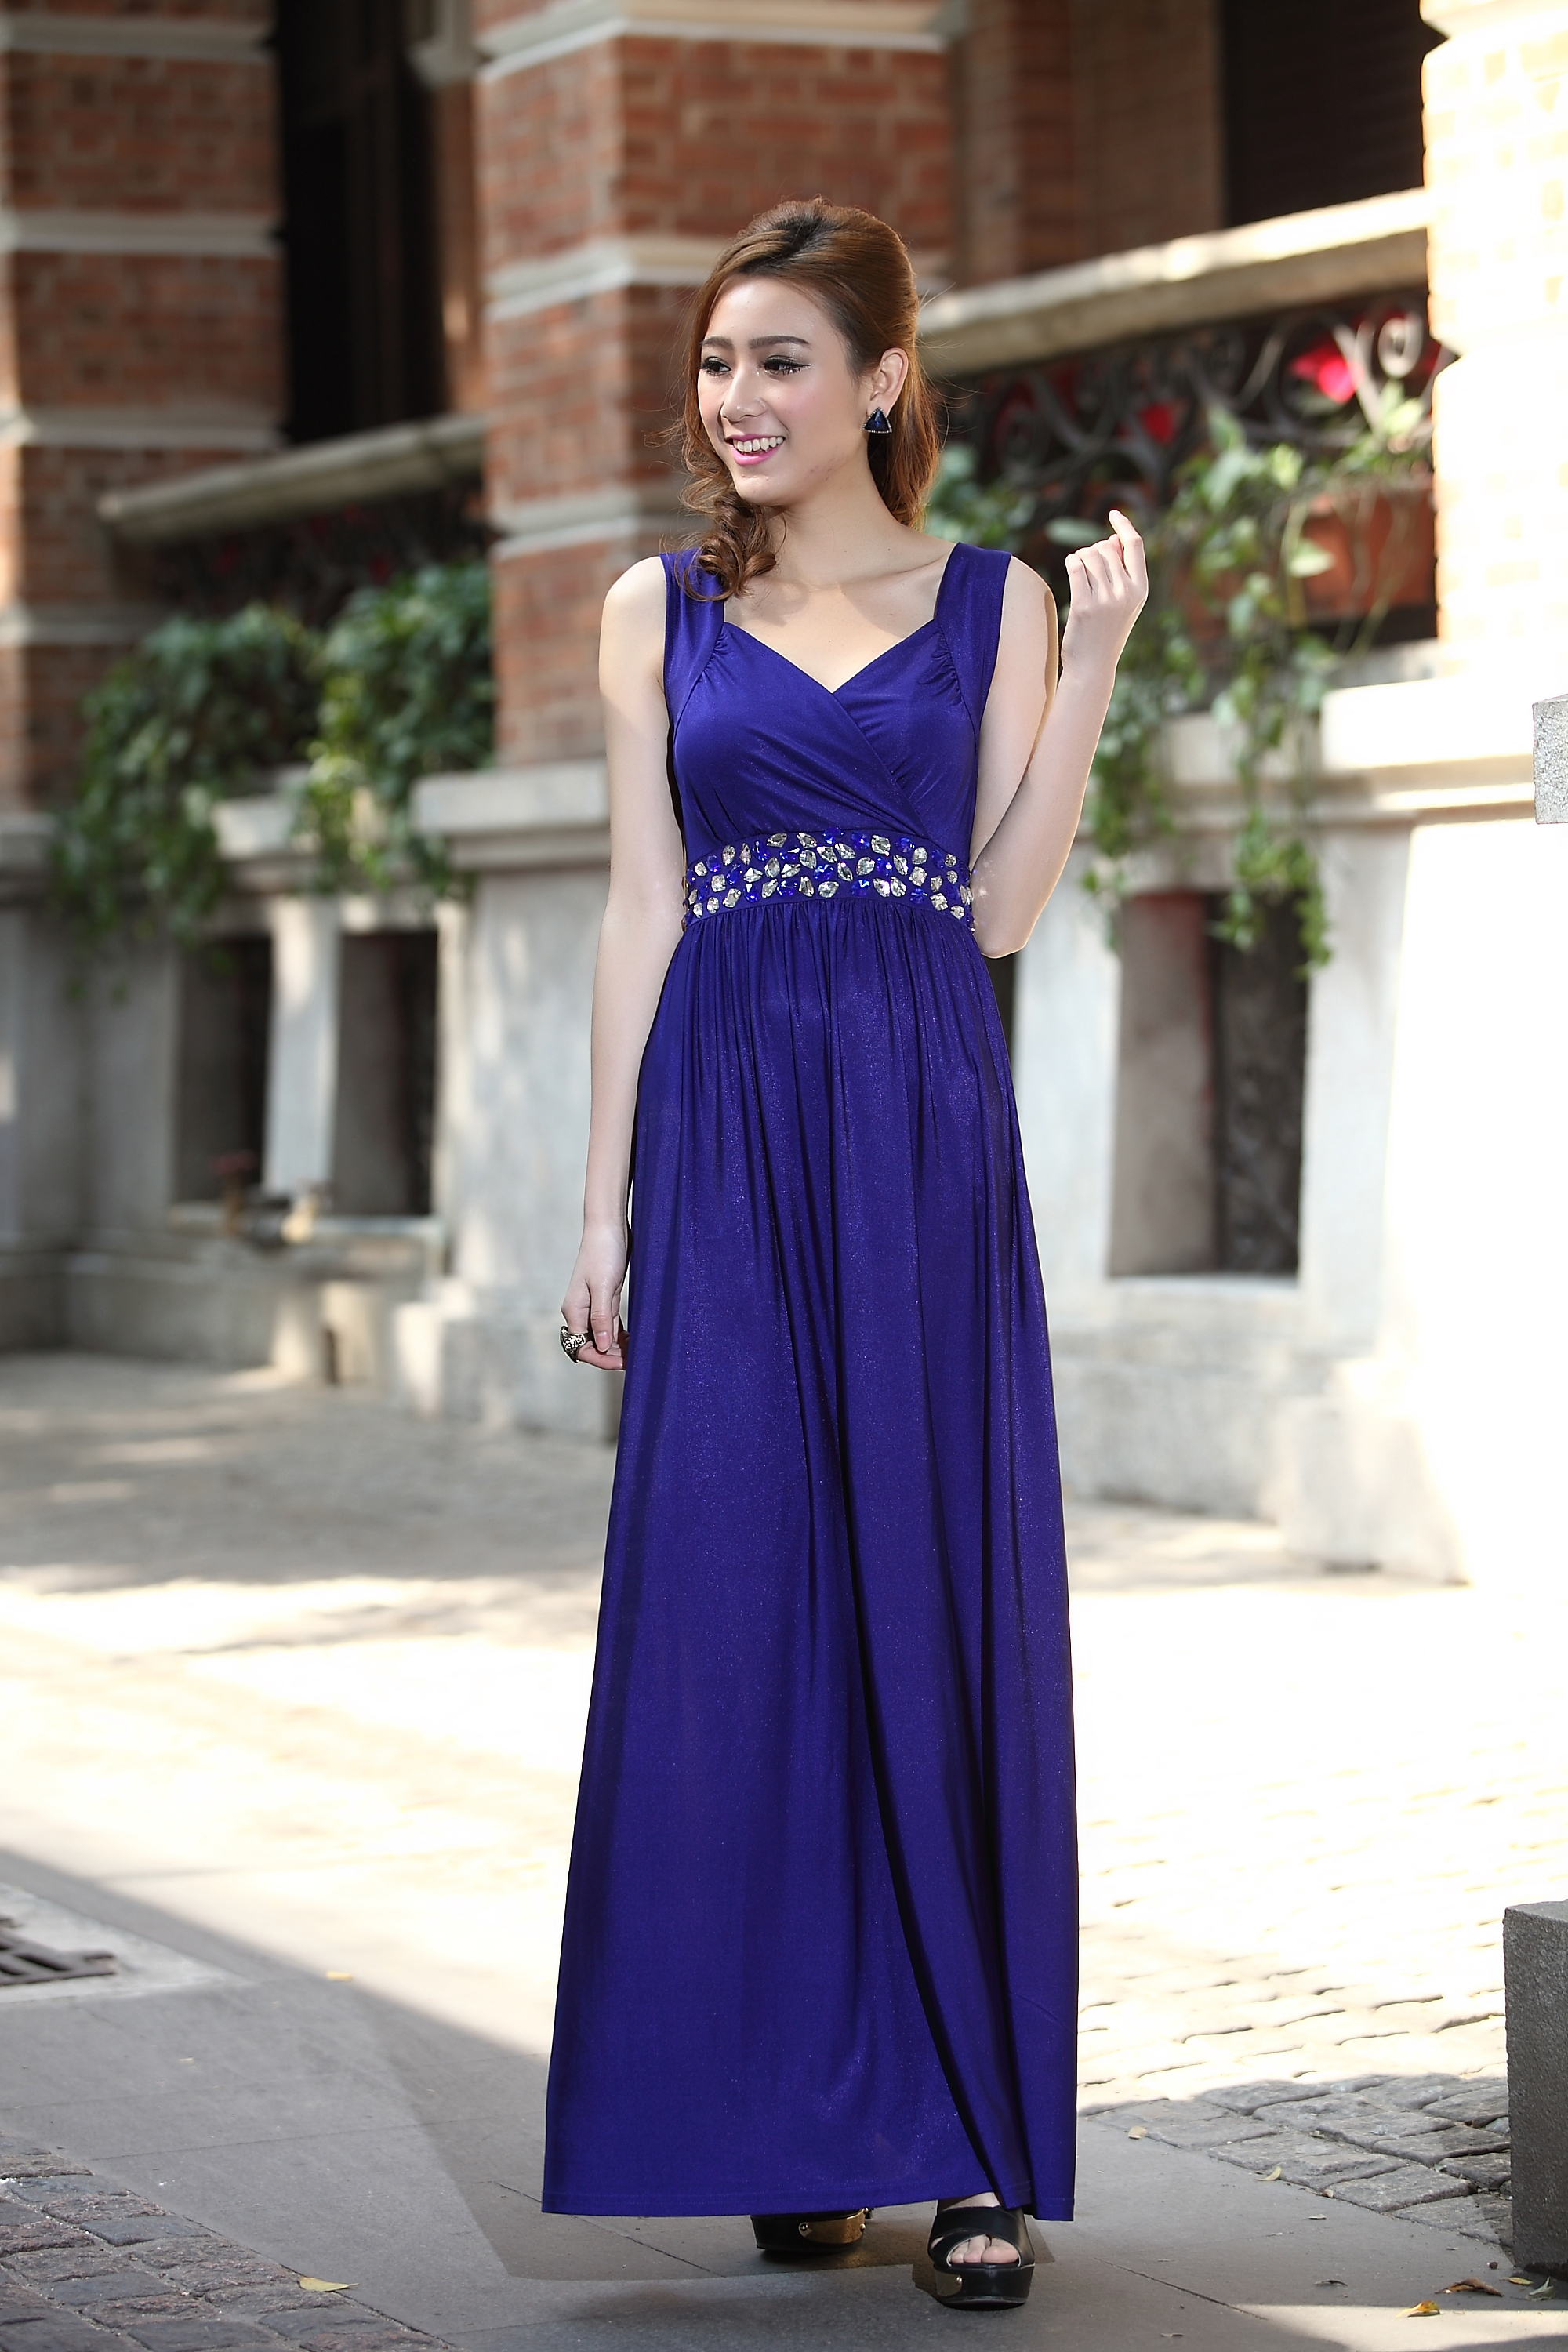 f349f06671a Royal Blue Formal Cocktail Bead Prom Party Evening Maxi Dress Bridesmaid  Gown Plus Sizes Bridesmaids on Luulla